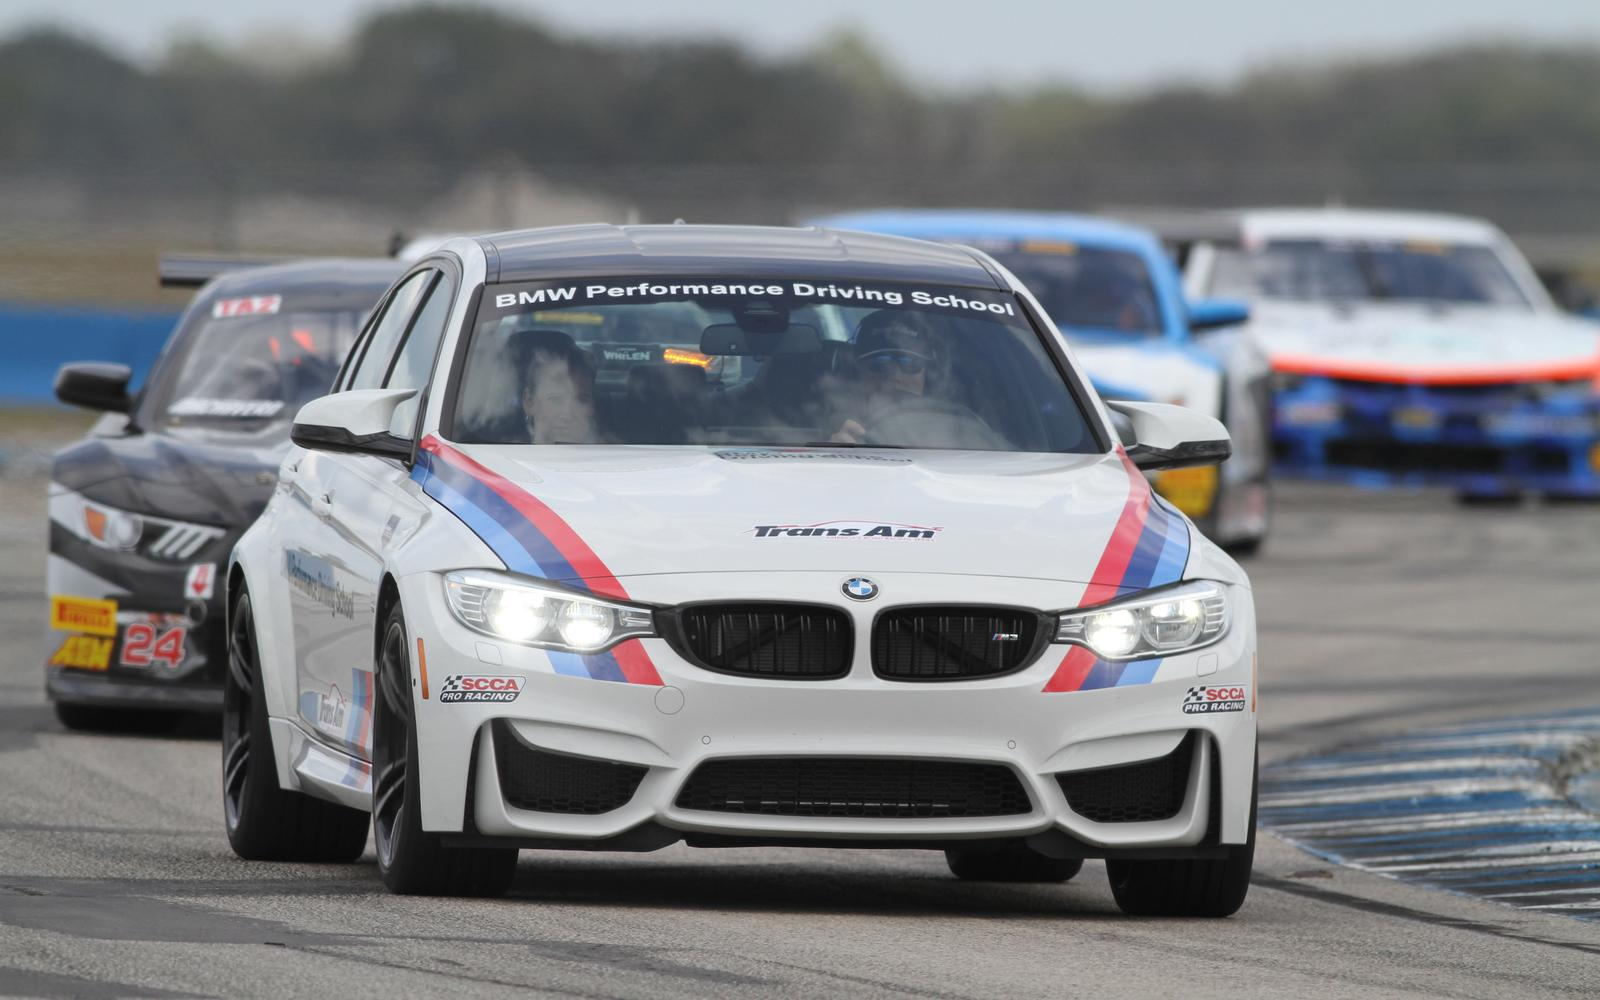 BMW Performance Driving School named Official Pace Car Provider of Trans Am